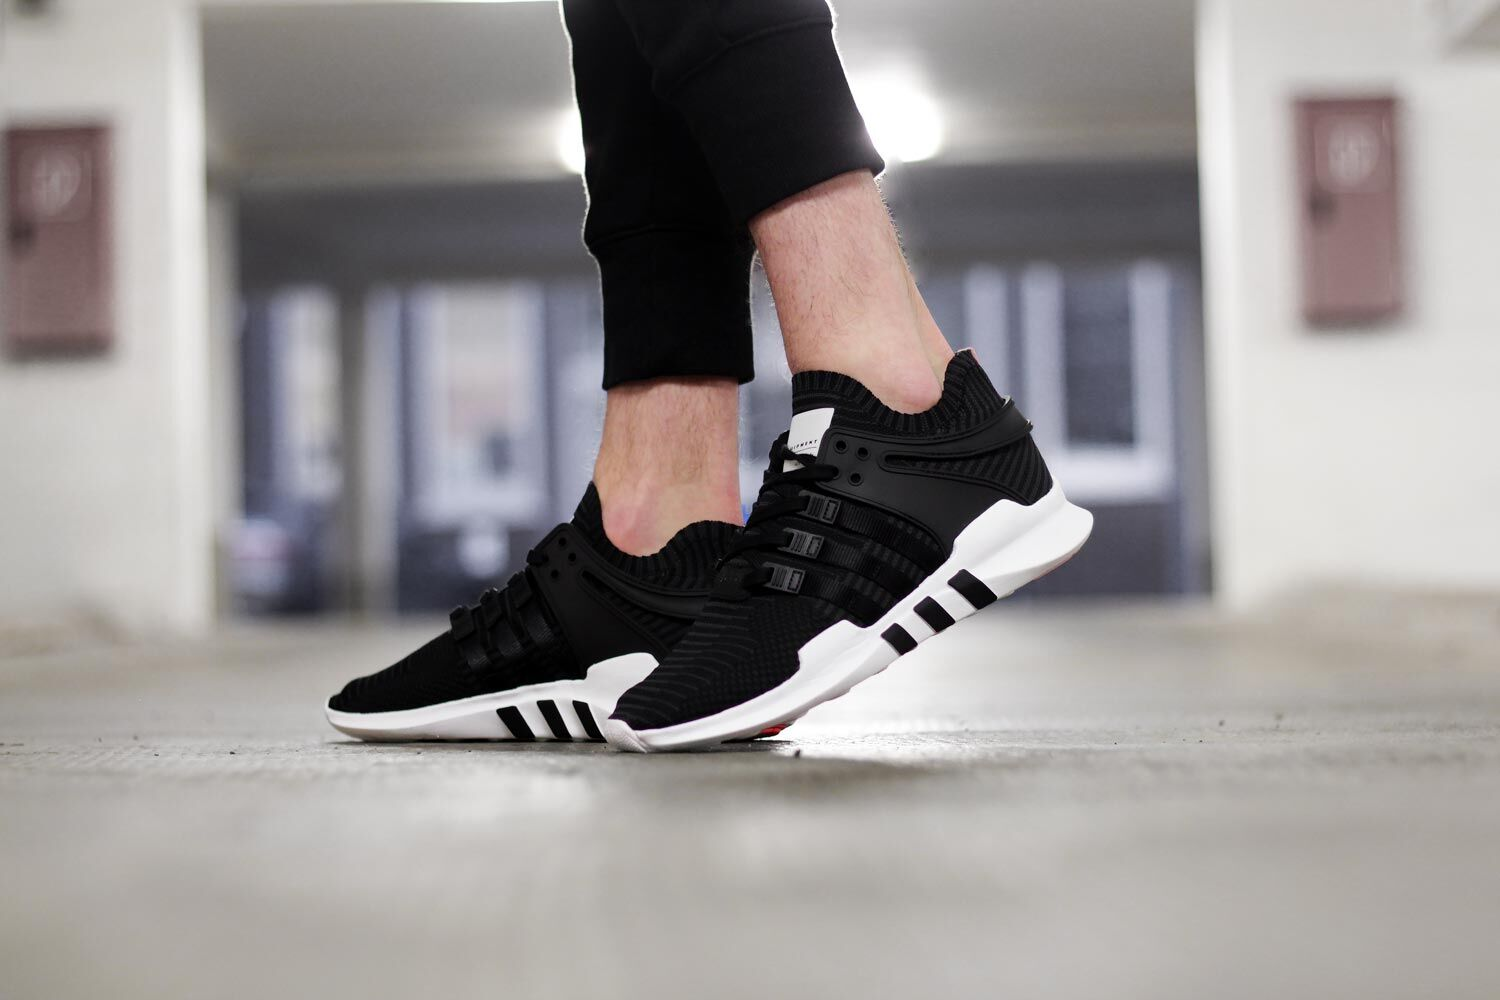 The adidas EQT Boost 93 17 x White Mountaineering Comes out on